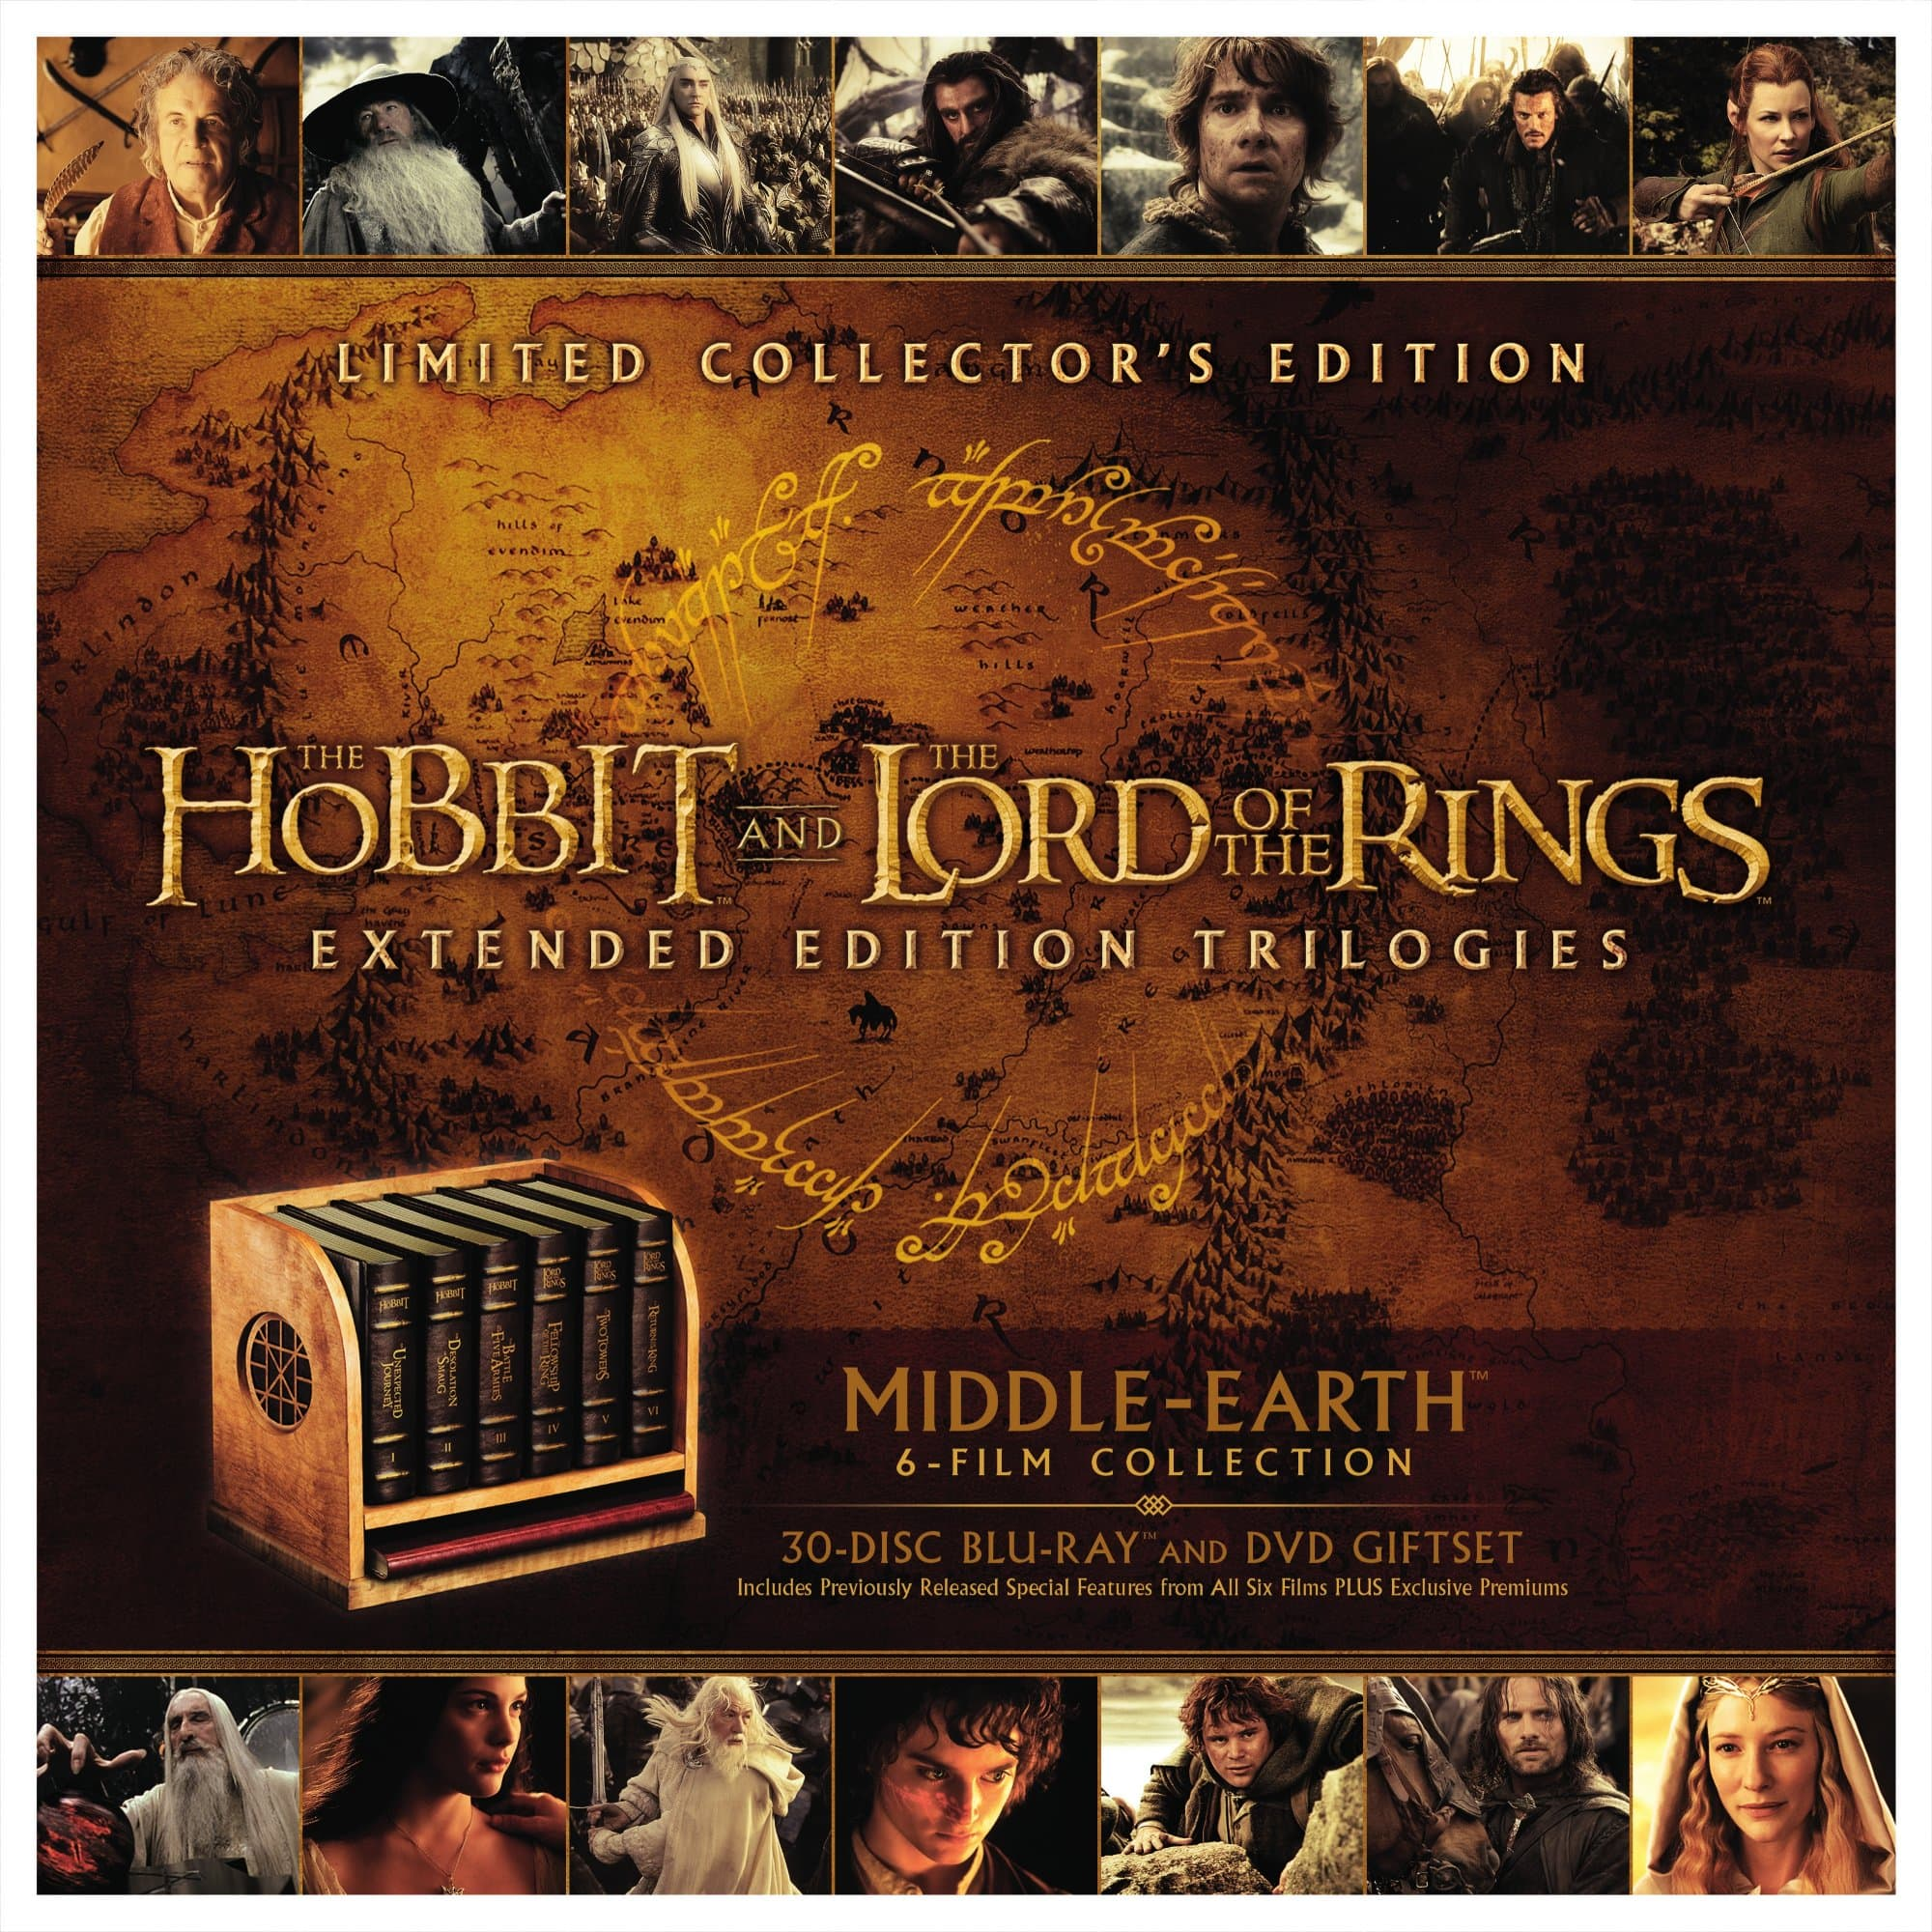 Middle-Earth Limited Collector's Edition - $192 + S&H AC at B&N